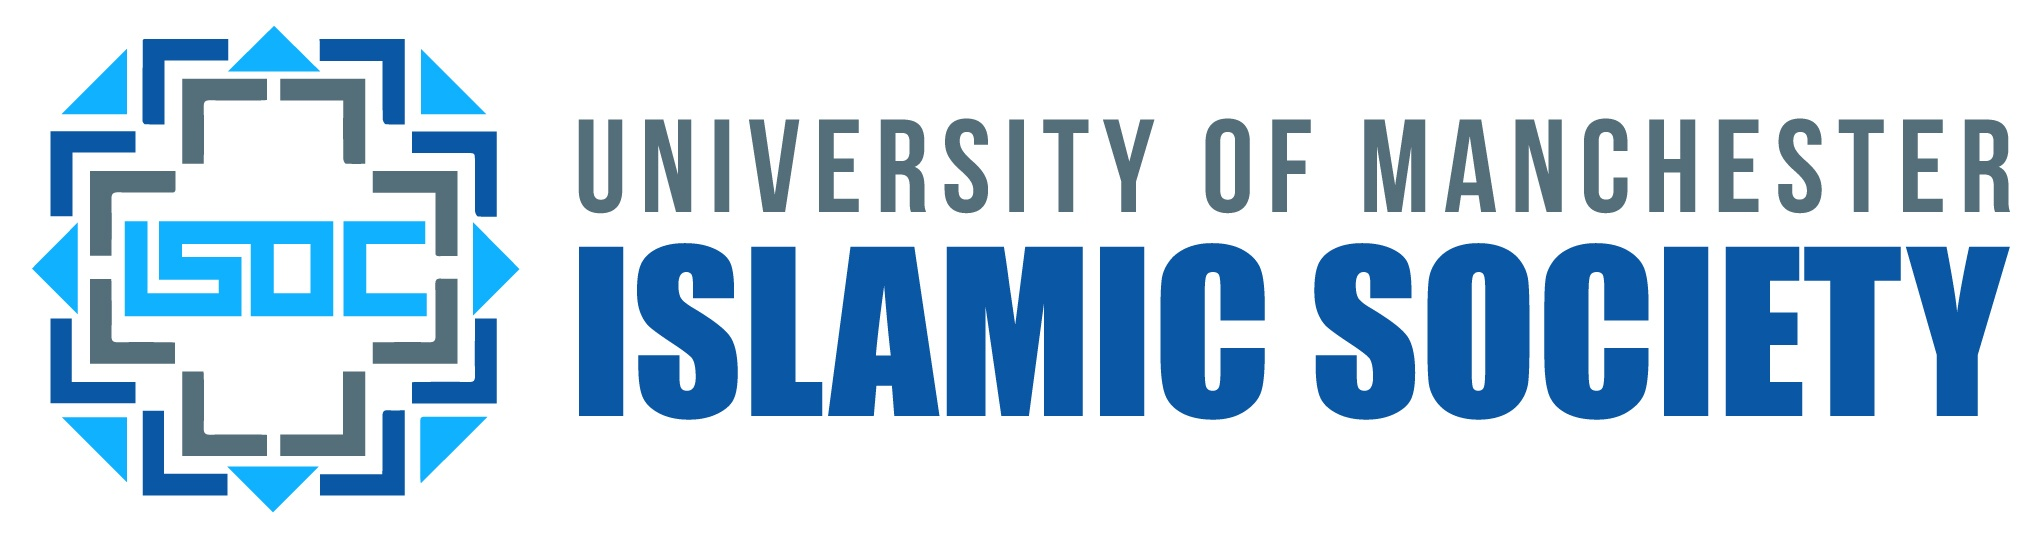 University of Manchester Islamic Society